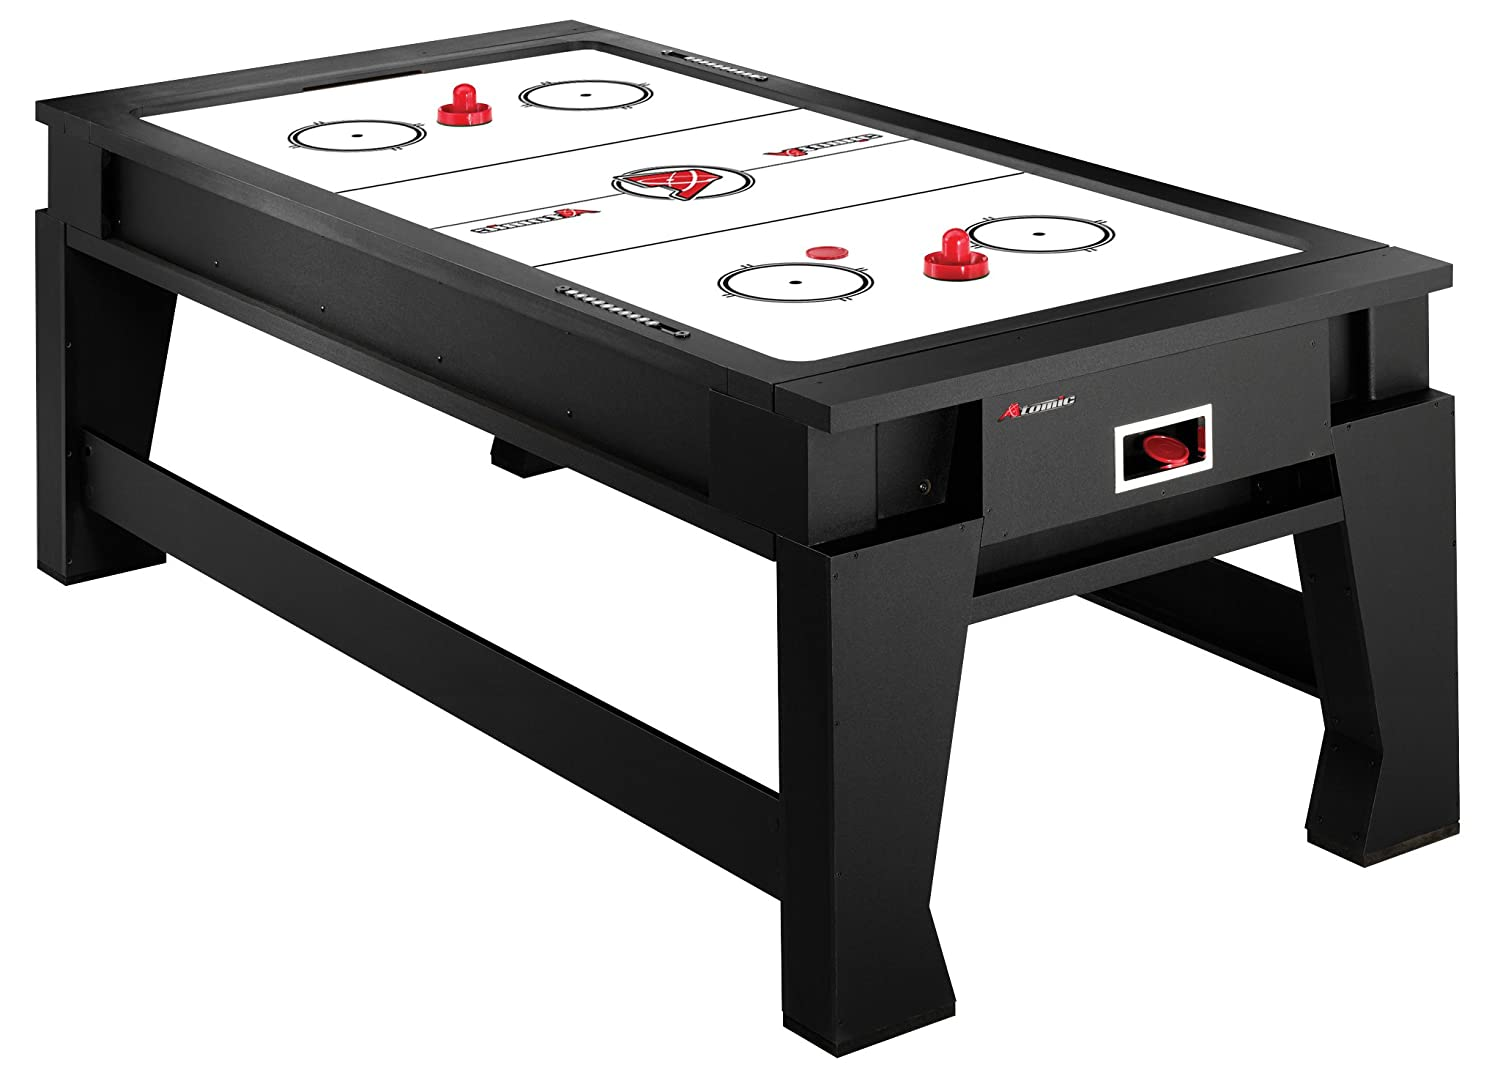 Harvard air hockey table owners manual boolnice harvard air hockey table owners manual harvard air hockey table owners manual keyboard keysfo Image collections